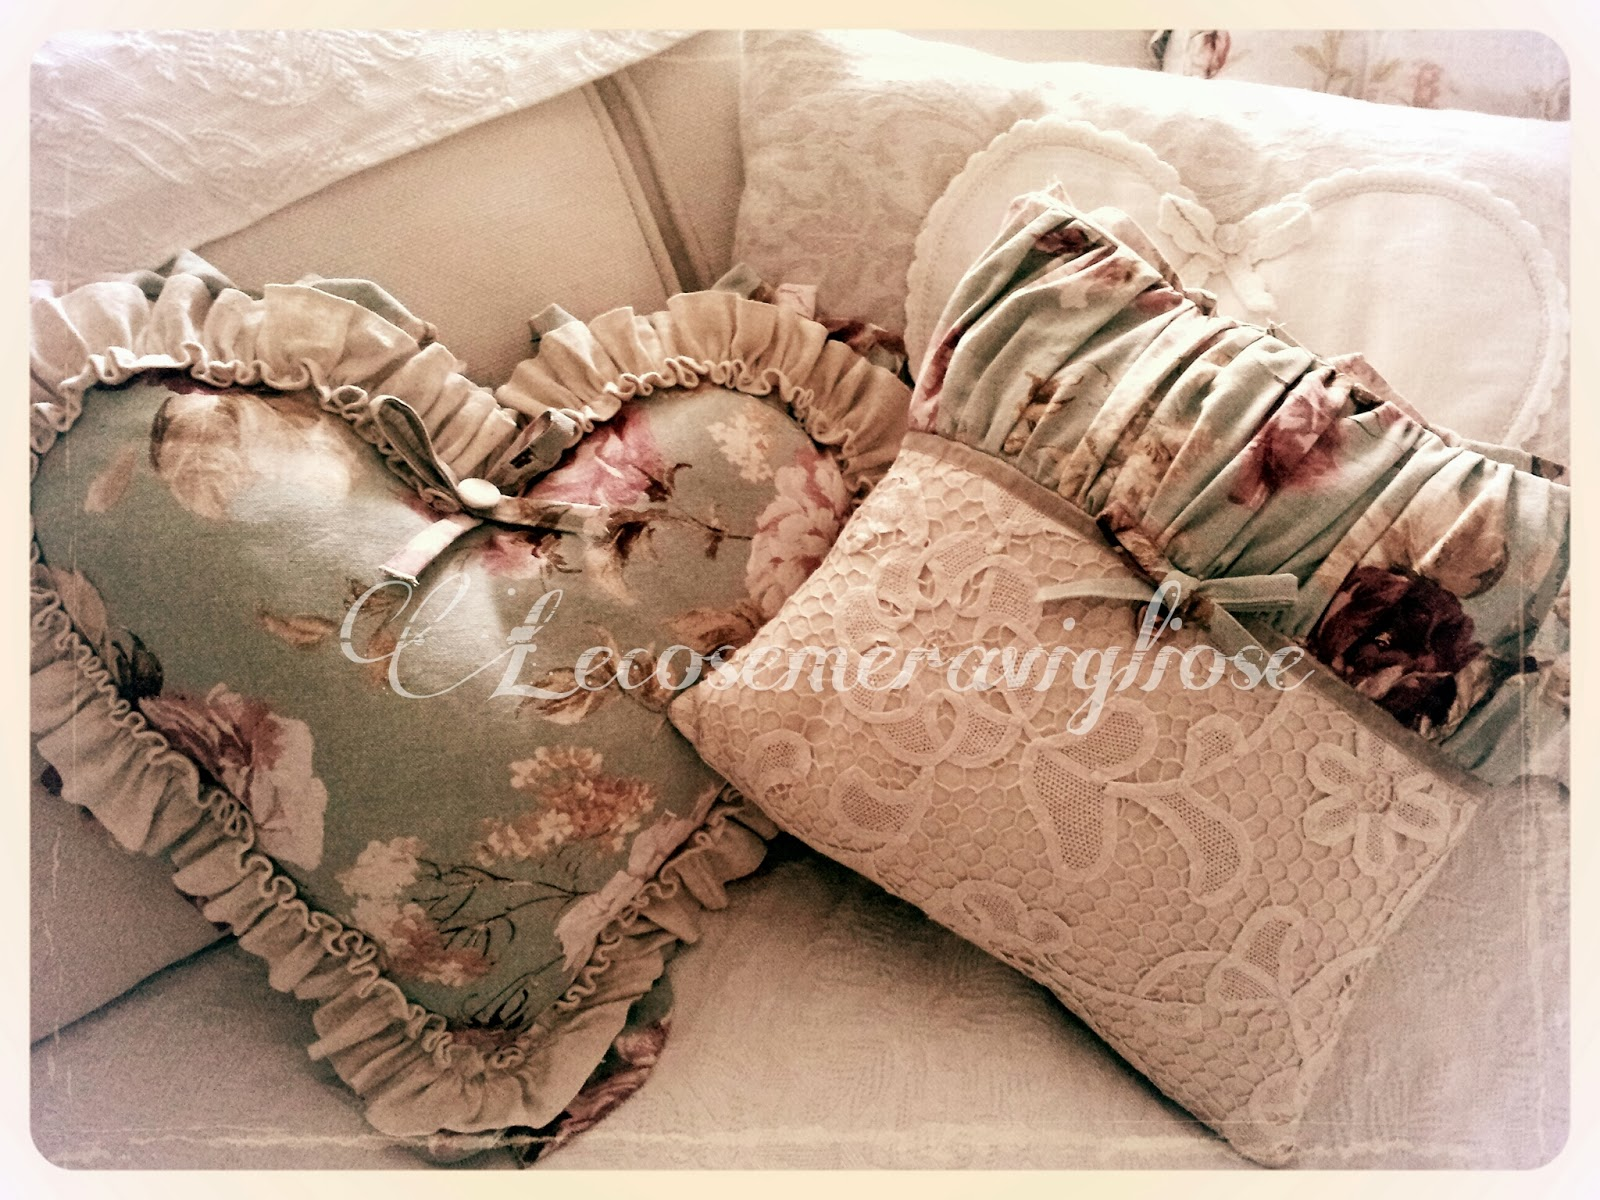 Lecosemeravigliose Shabby E Country Chic Passions Tende Cuscini E